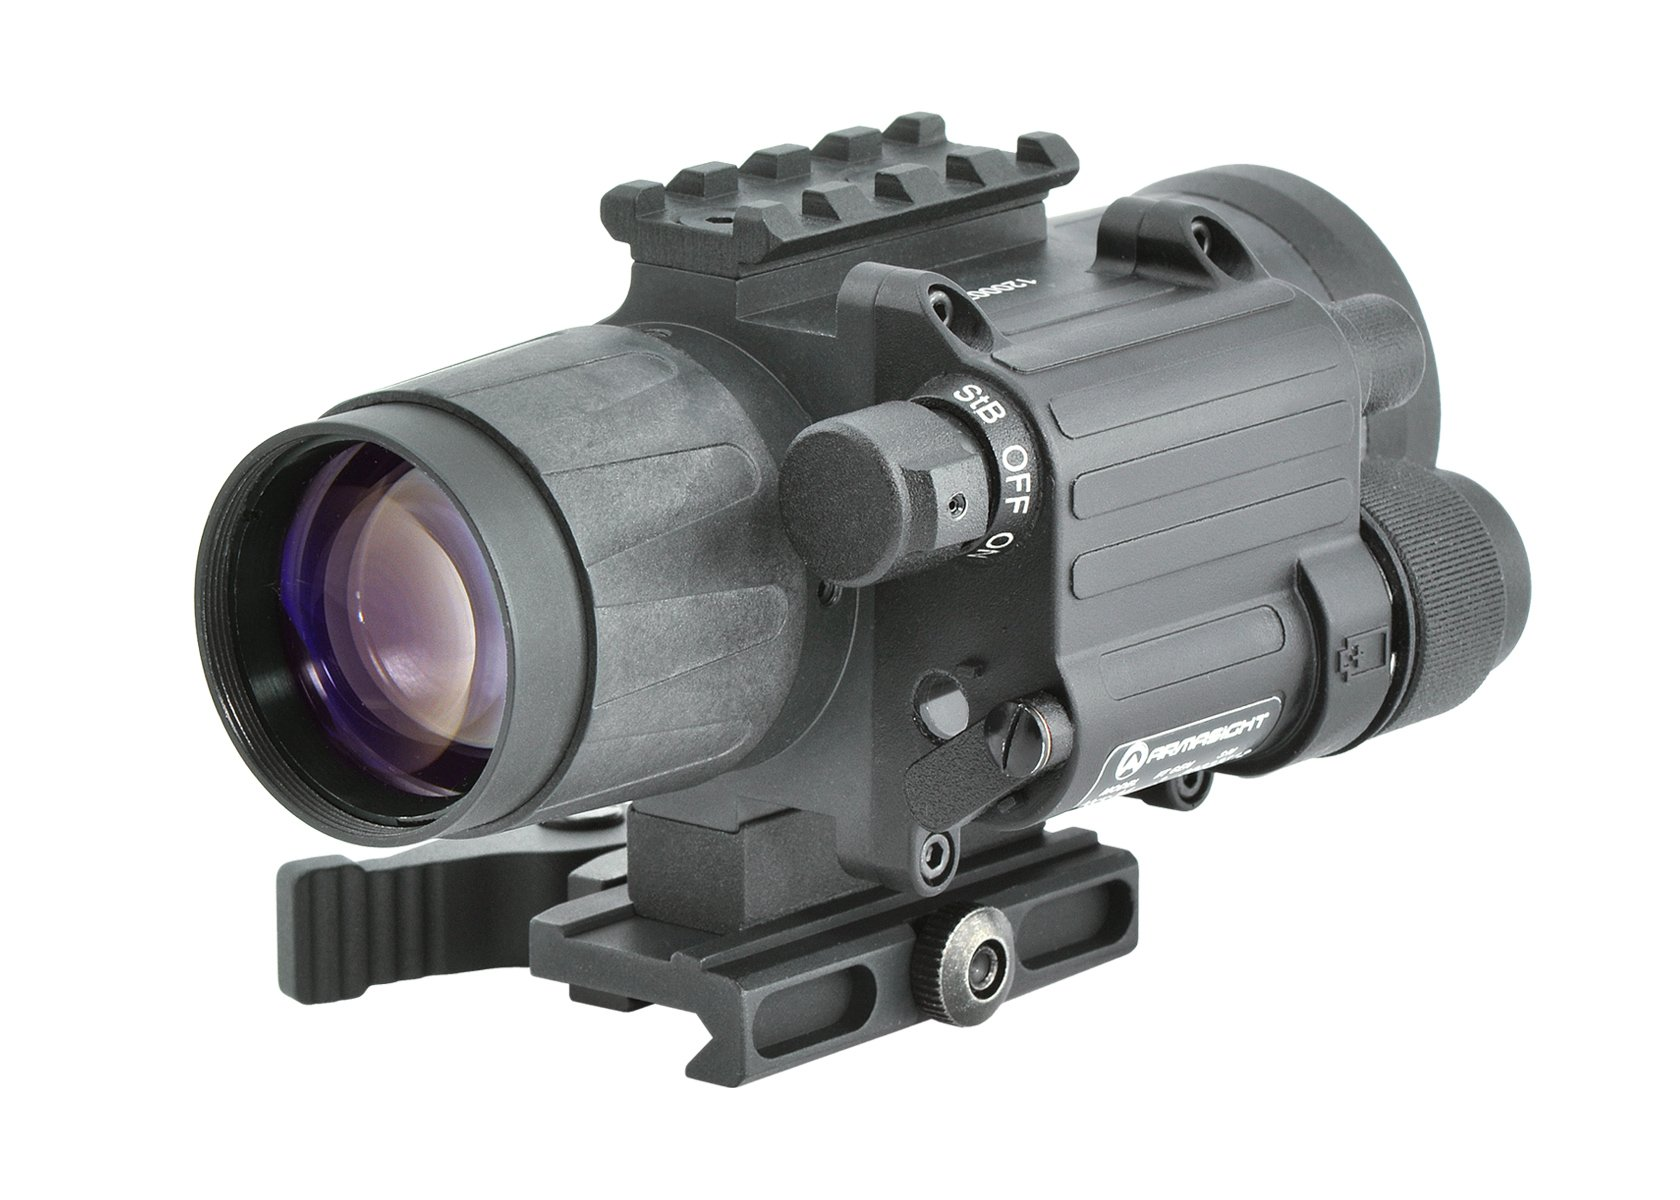 Armasight CO-Mini 3P MG - Night Vision Mini Clip-On System Gen 3; High-Performance Thin-Filmed Auto-Gated IIT with Manual Gain